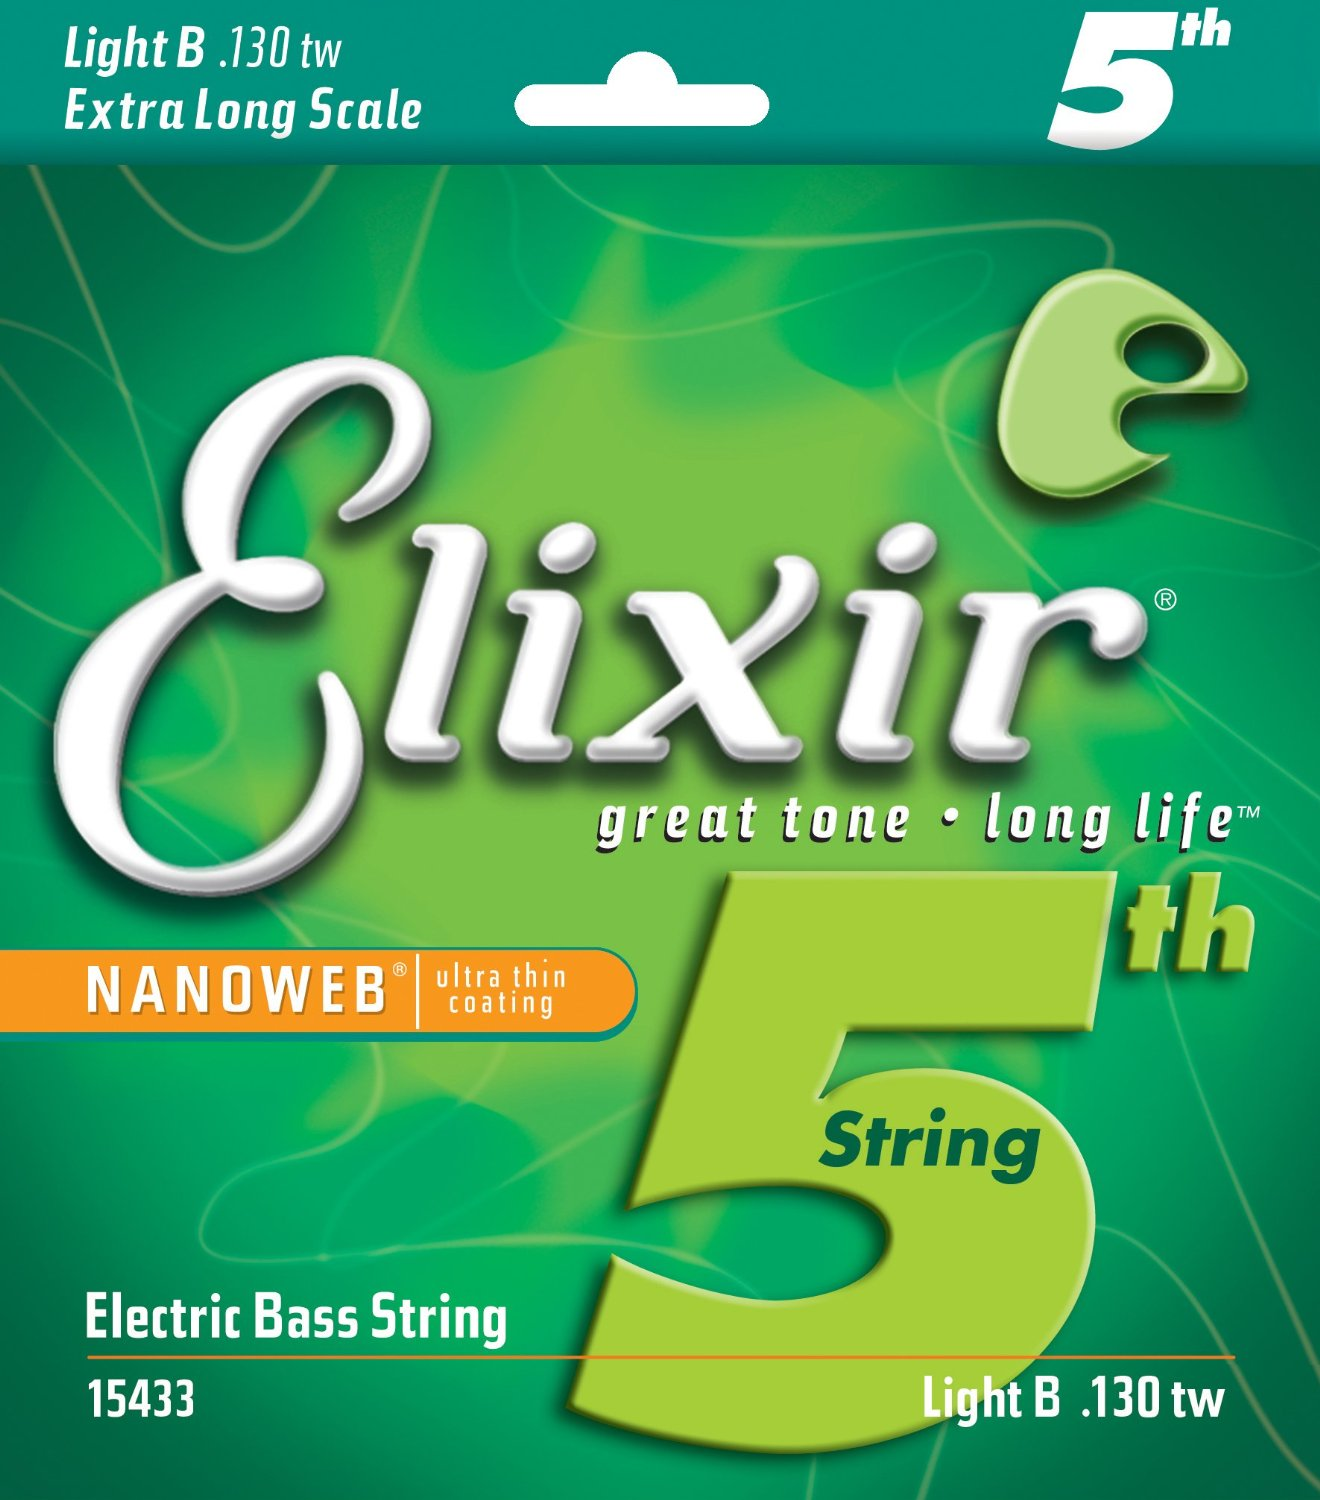 Elixir® Strings Nickel Plated Steel with NANOWEB® Coating, Custom Bass 5th String Single, Light B, Extra Long Scale TaperWound (.130tw)